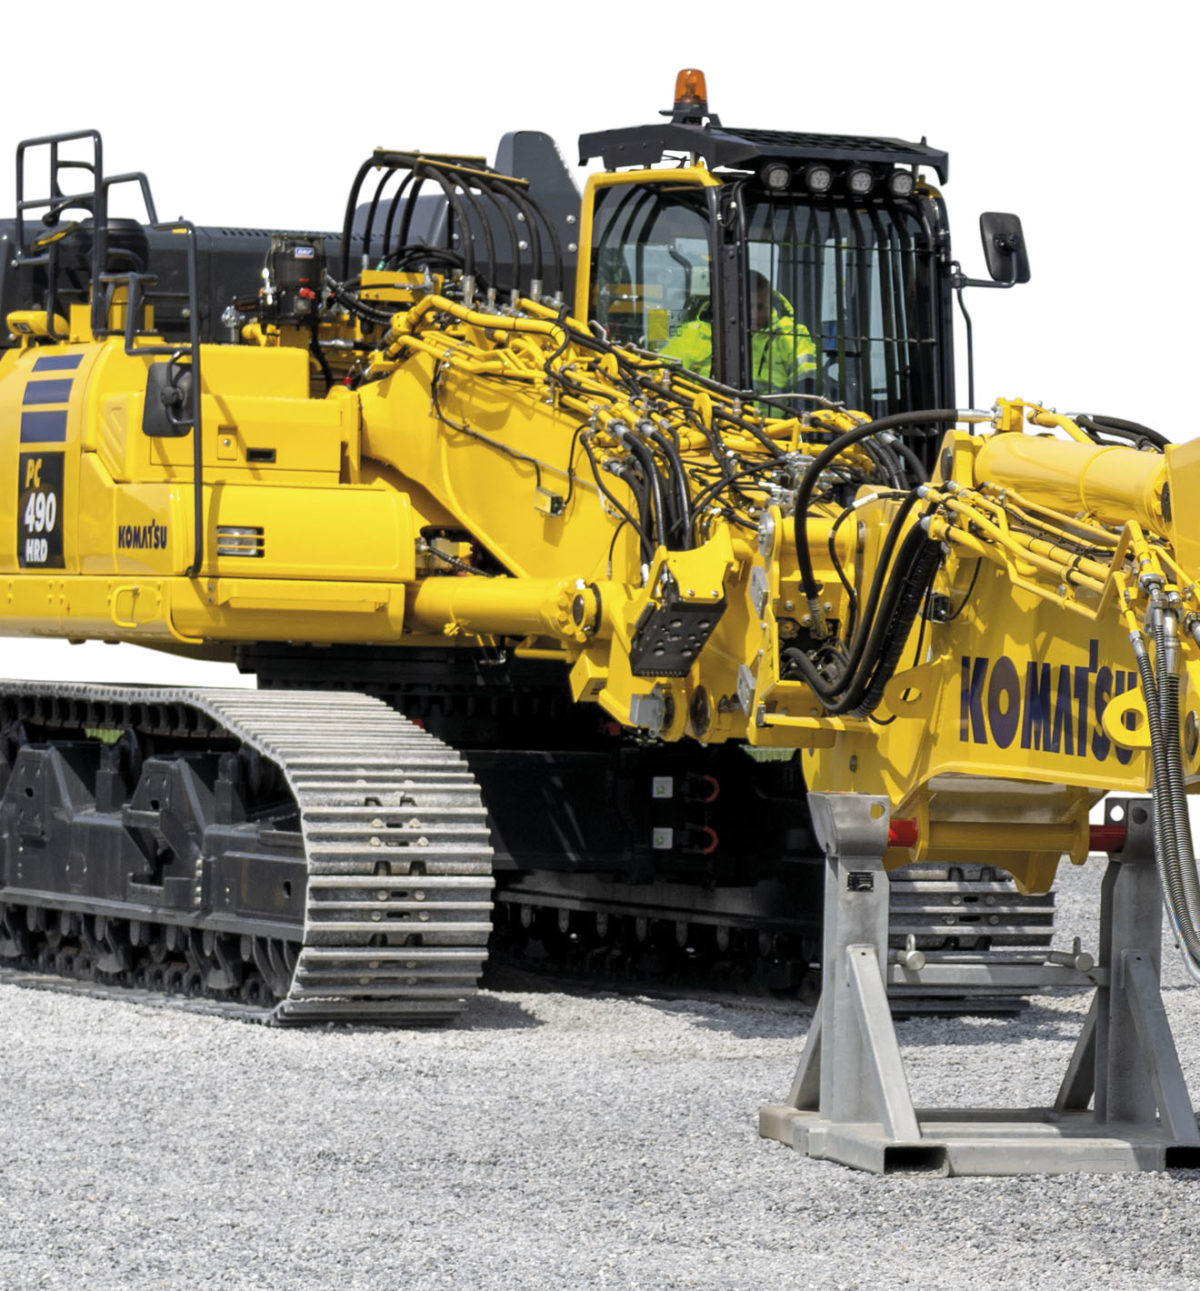 Komatsu Europe introduces the new K100 boom change system for PC490HRD-11